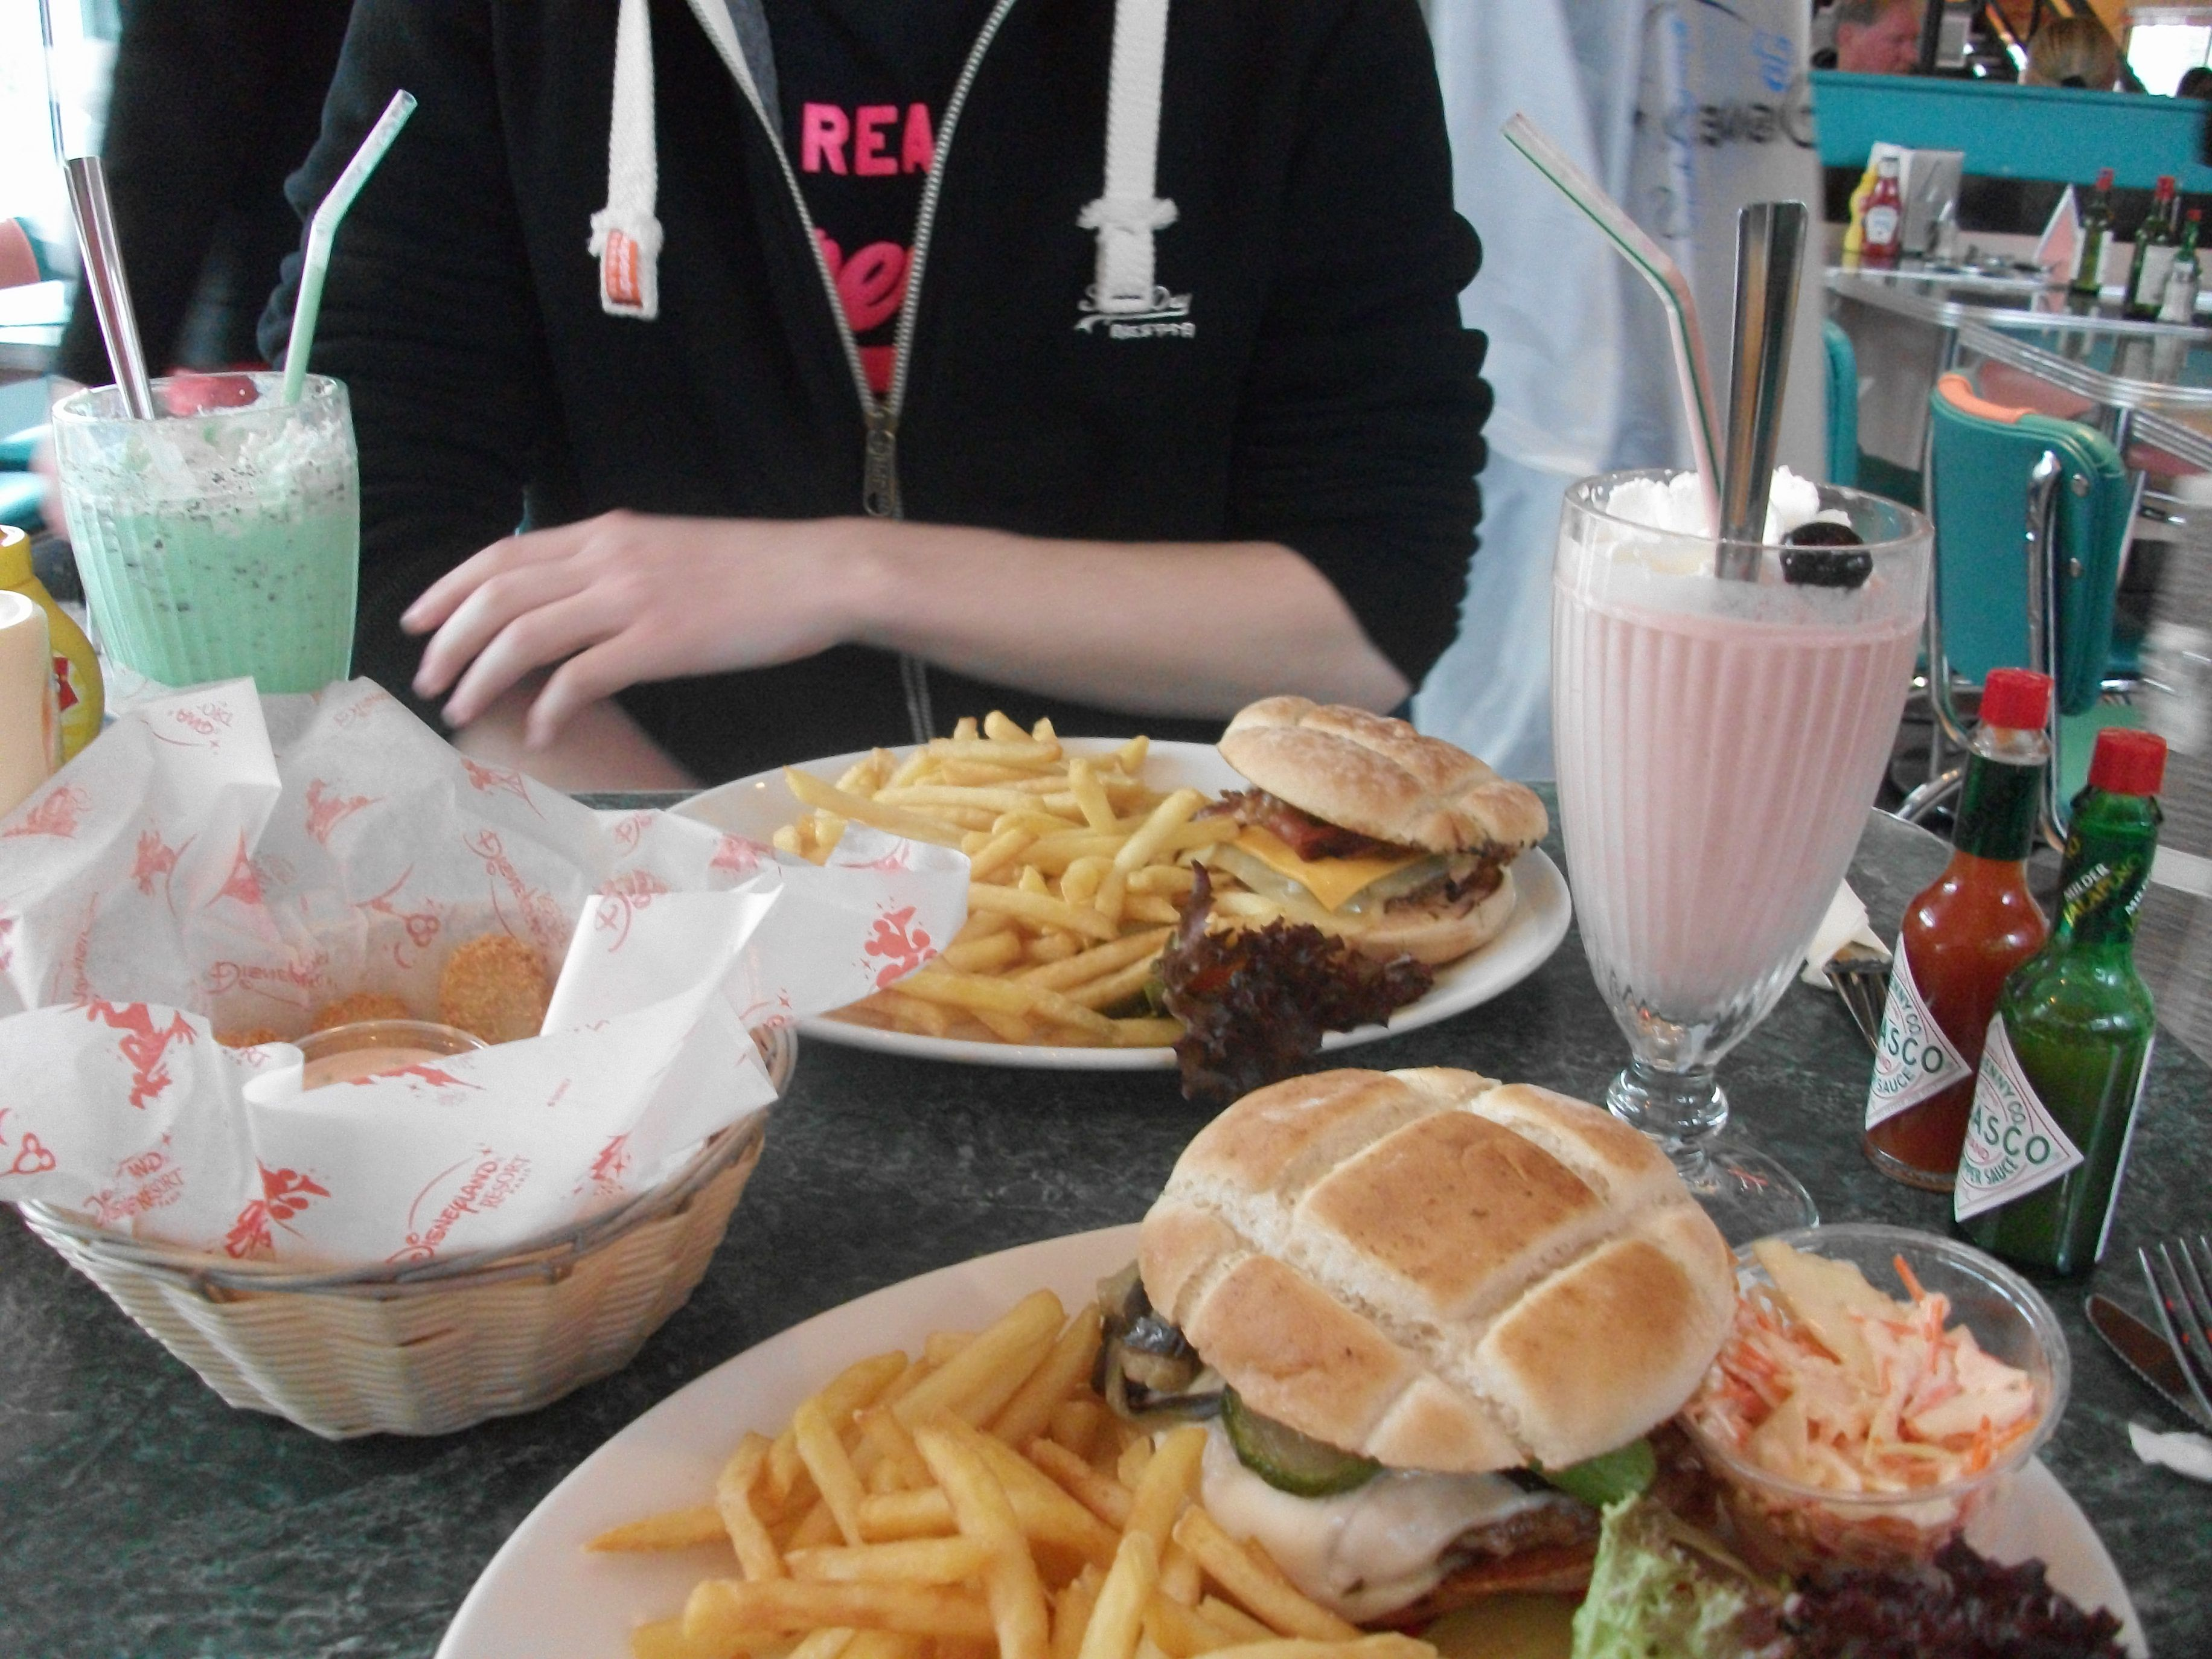 Annettes Diner has the best food <3